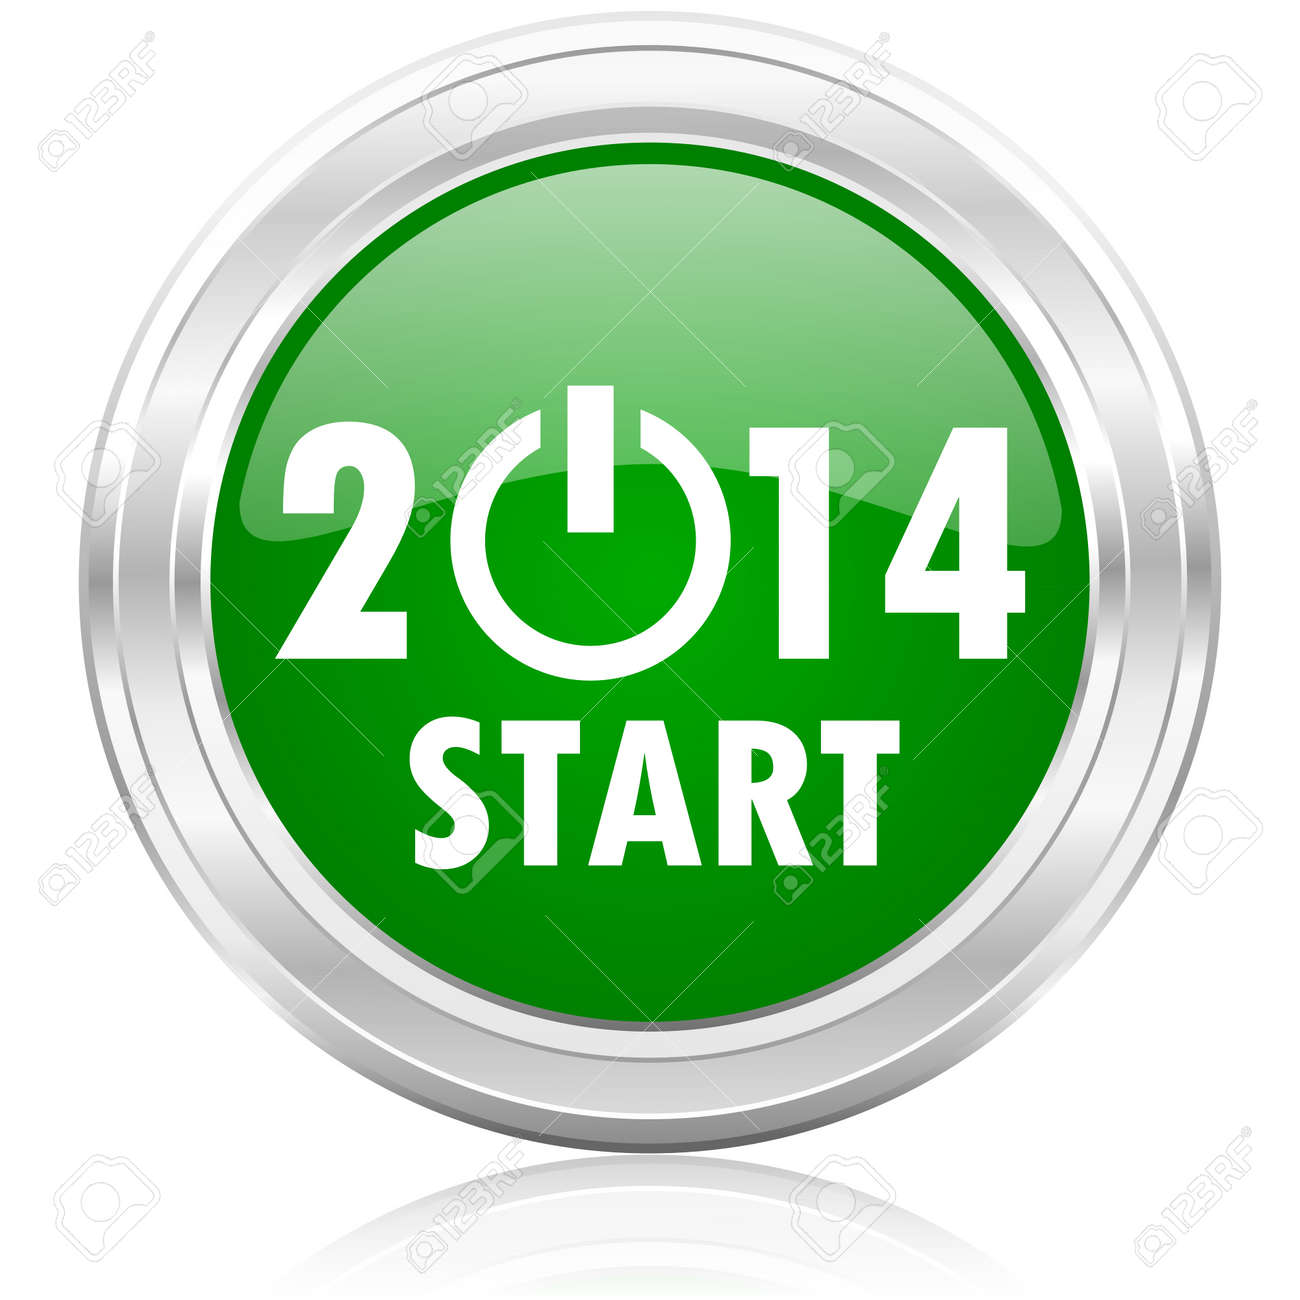 year 2014 icon - 22531686